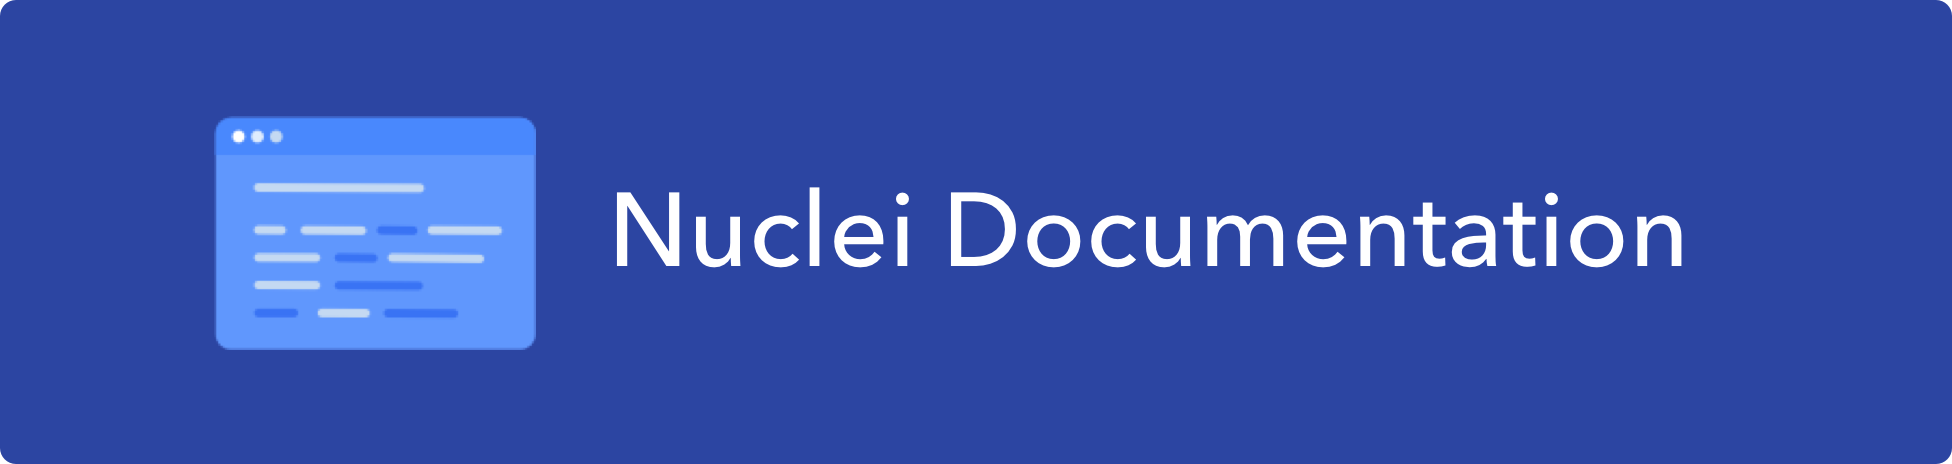 Check Nuclei Documentation